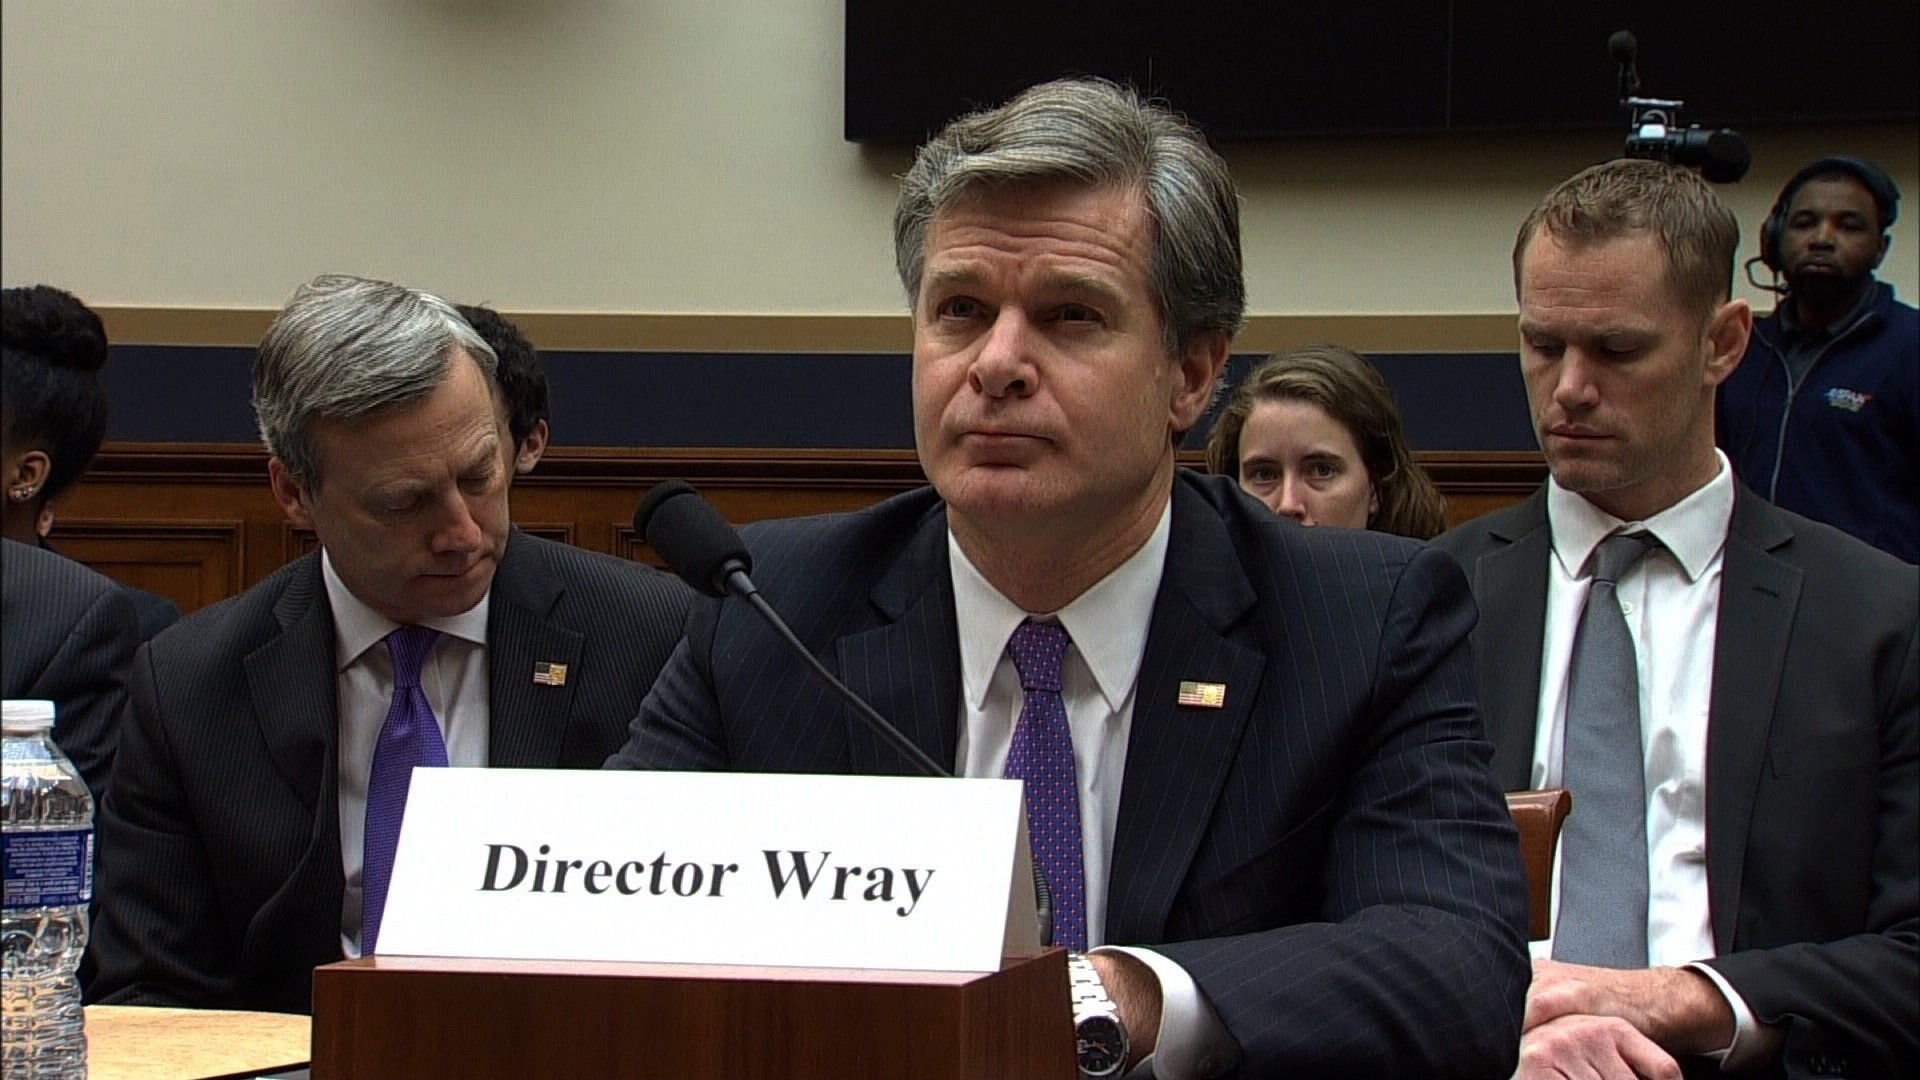 FBI Director Christopher Wray testifies on December 7, 2017, after President Trump's attacks on agency.